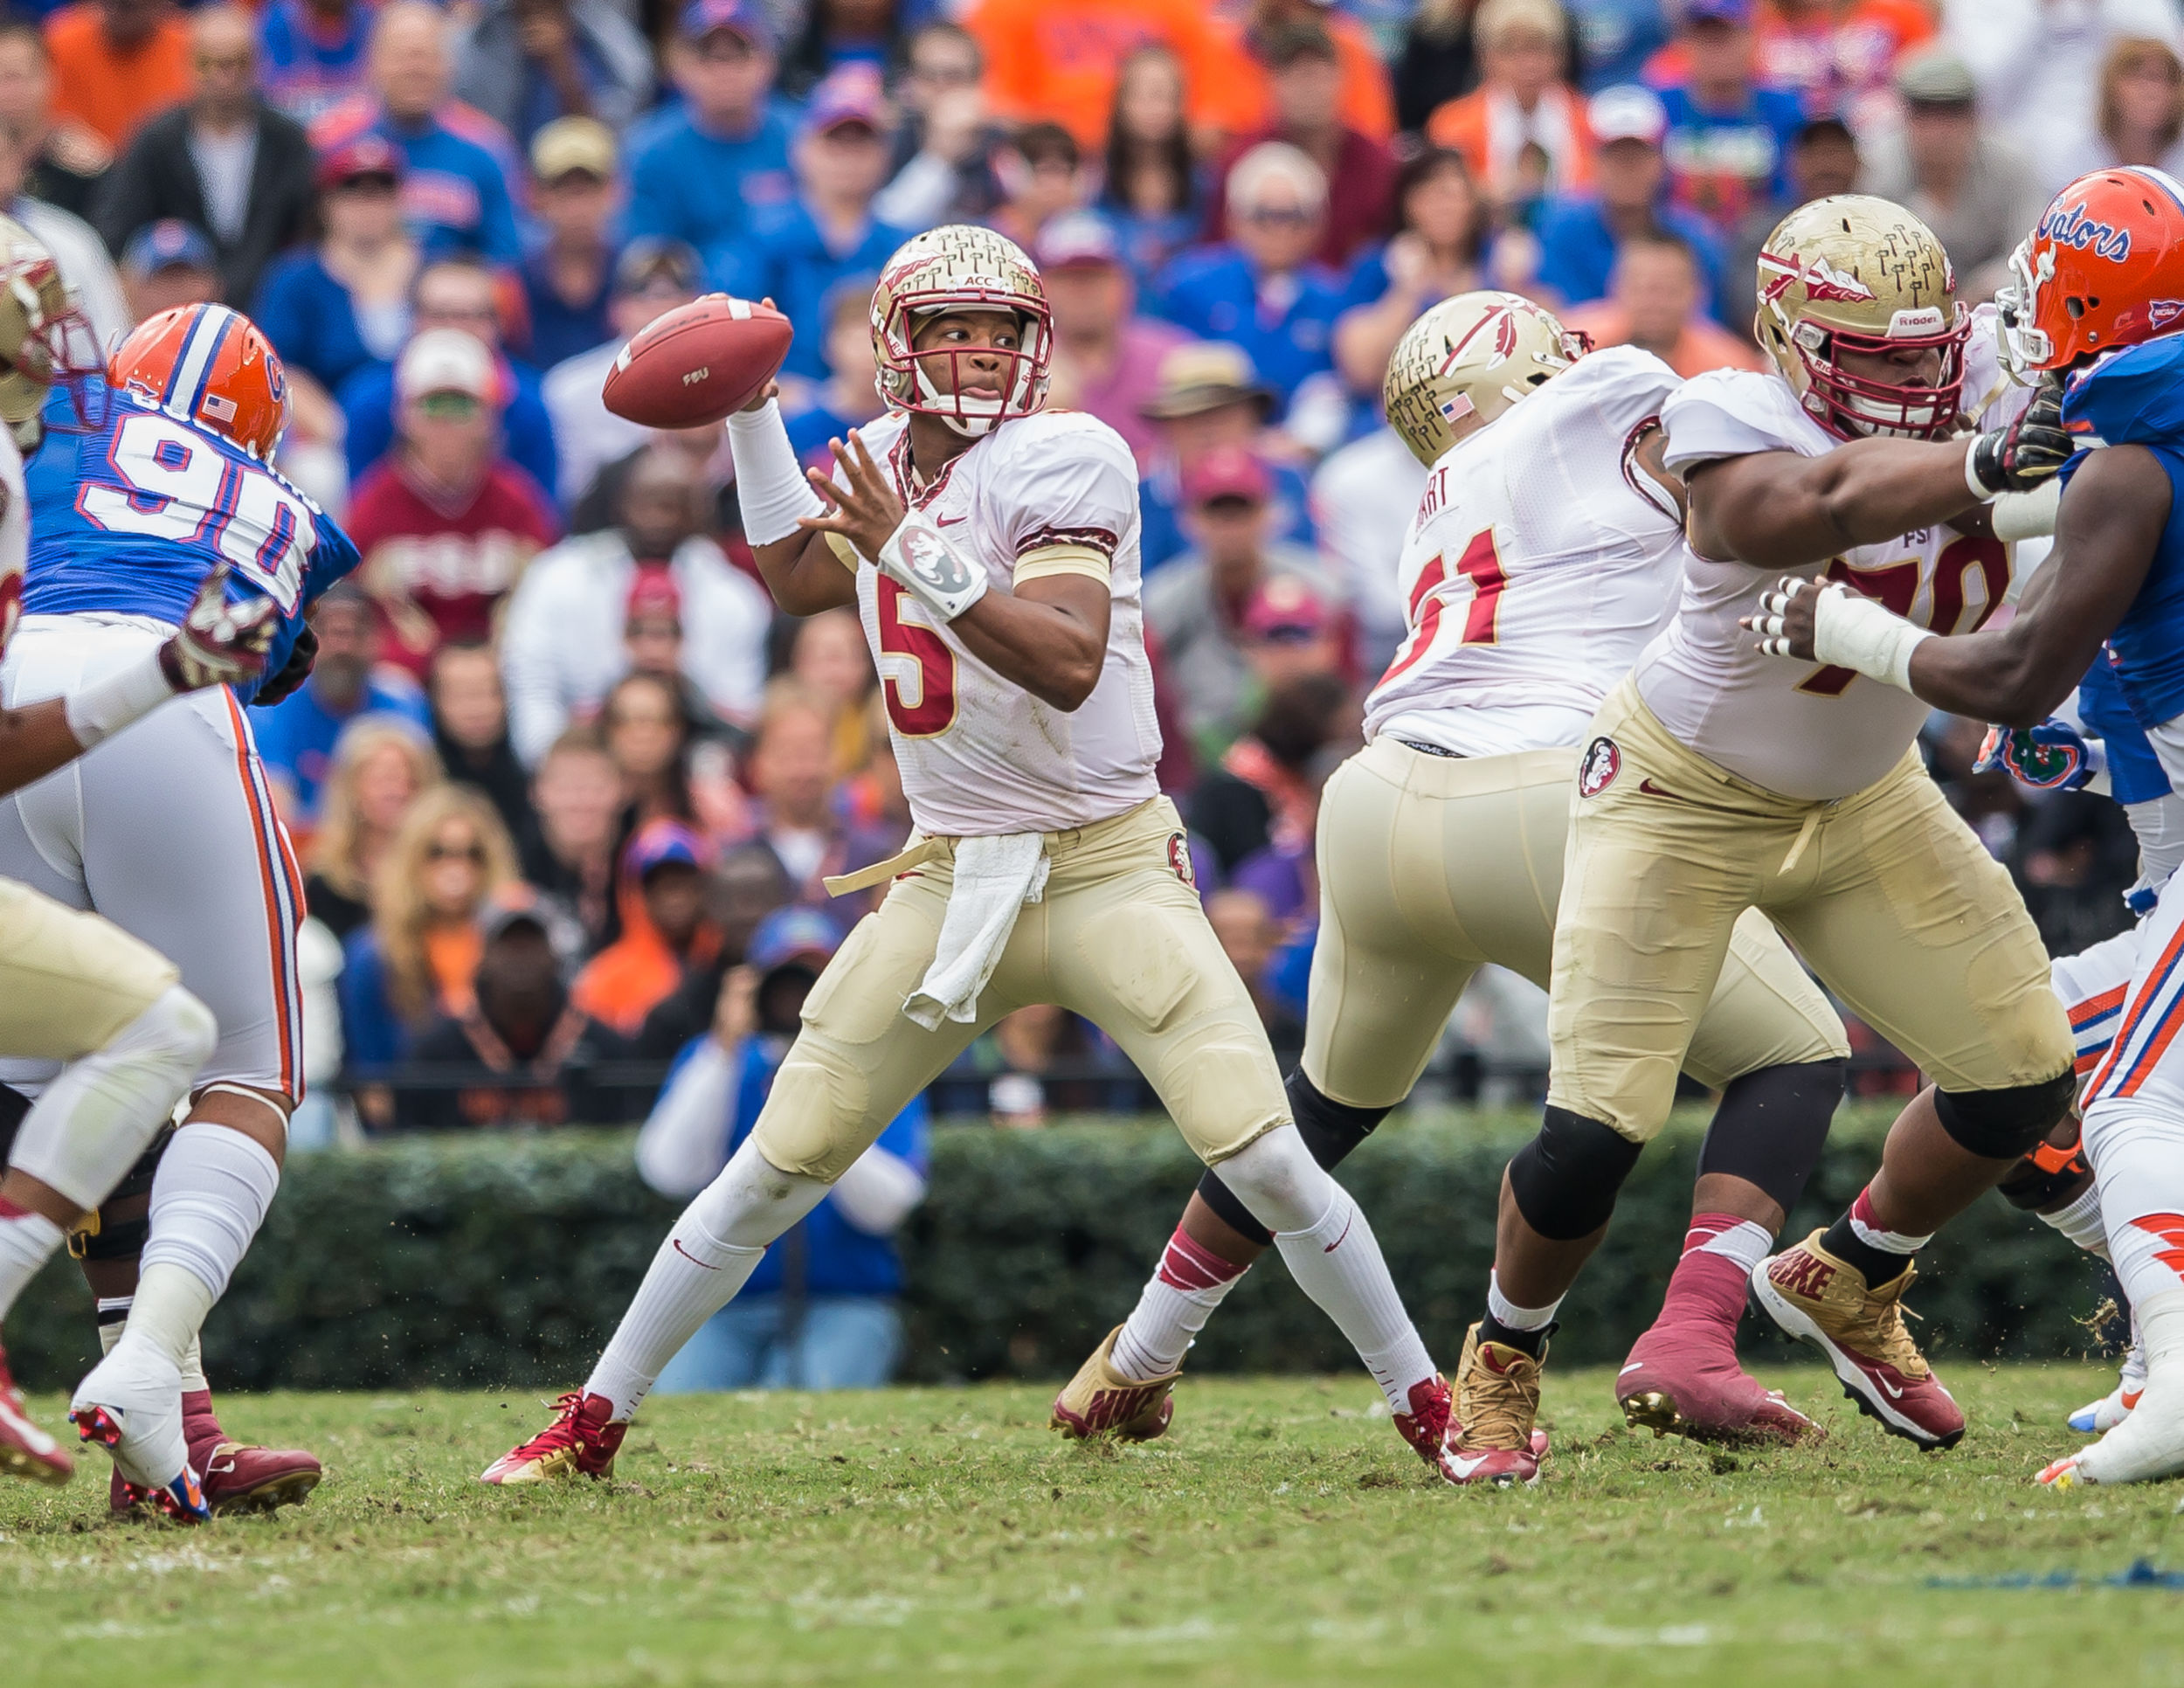 Florida State University Football quarterback